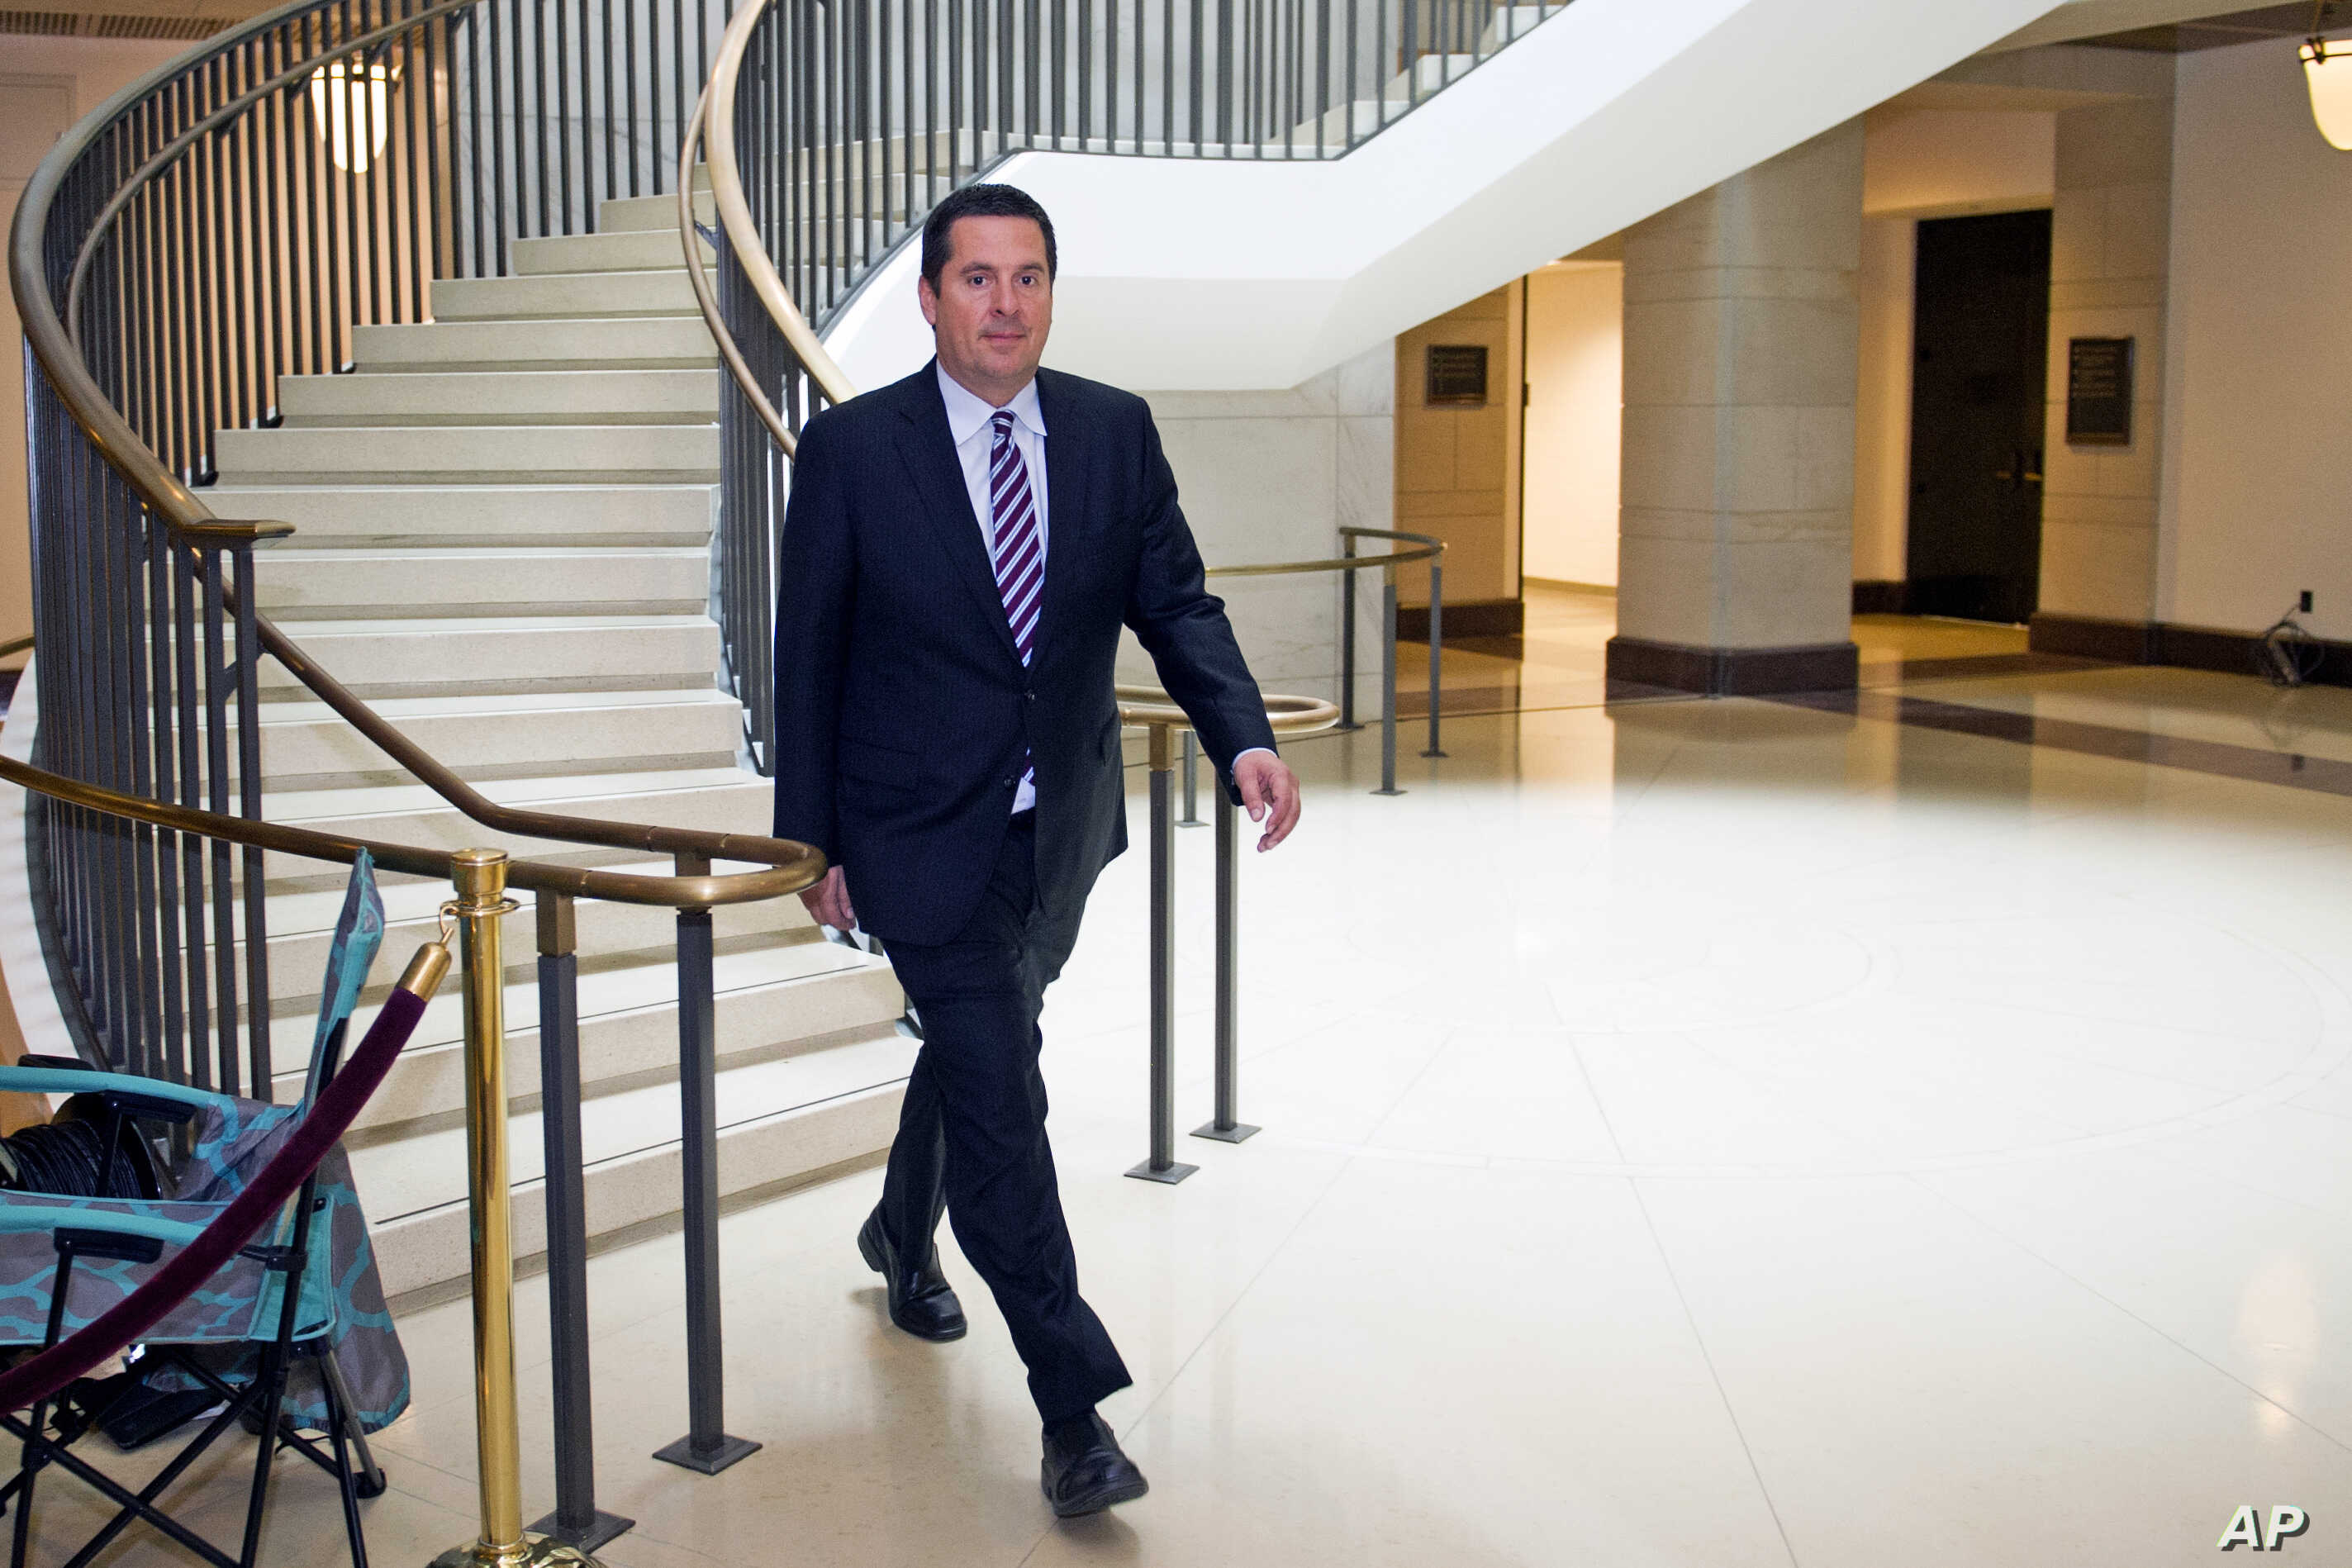 House Intelligence Committee Chairman Rep. Devin Nunes, R-California, walks to the House Intelligence Committee hearing room on Capitol Hill in Washington, Jan. 17, 2018.